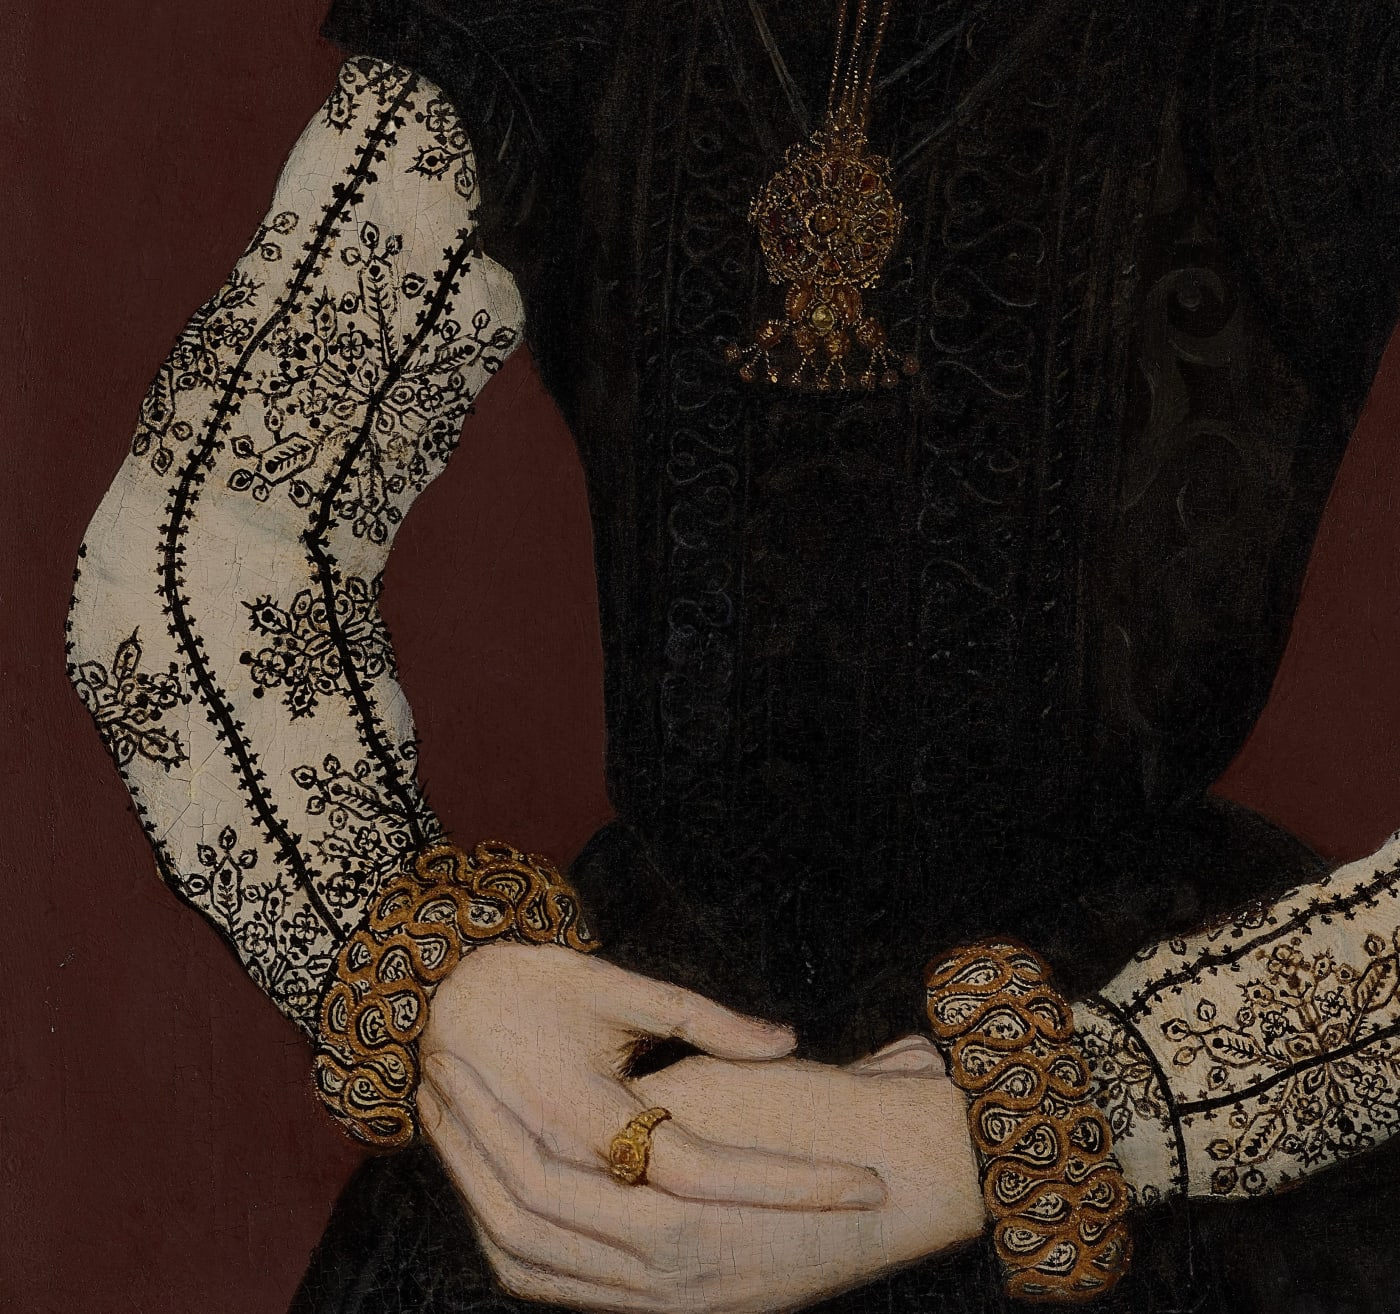 clasped hands of young woman dressed in embroidered dress painted by a tudor artist